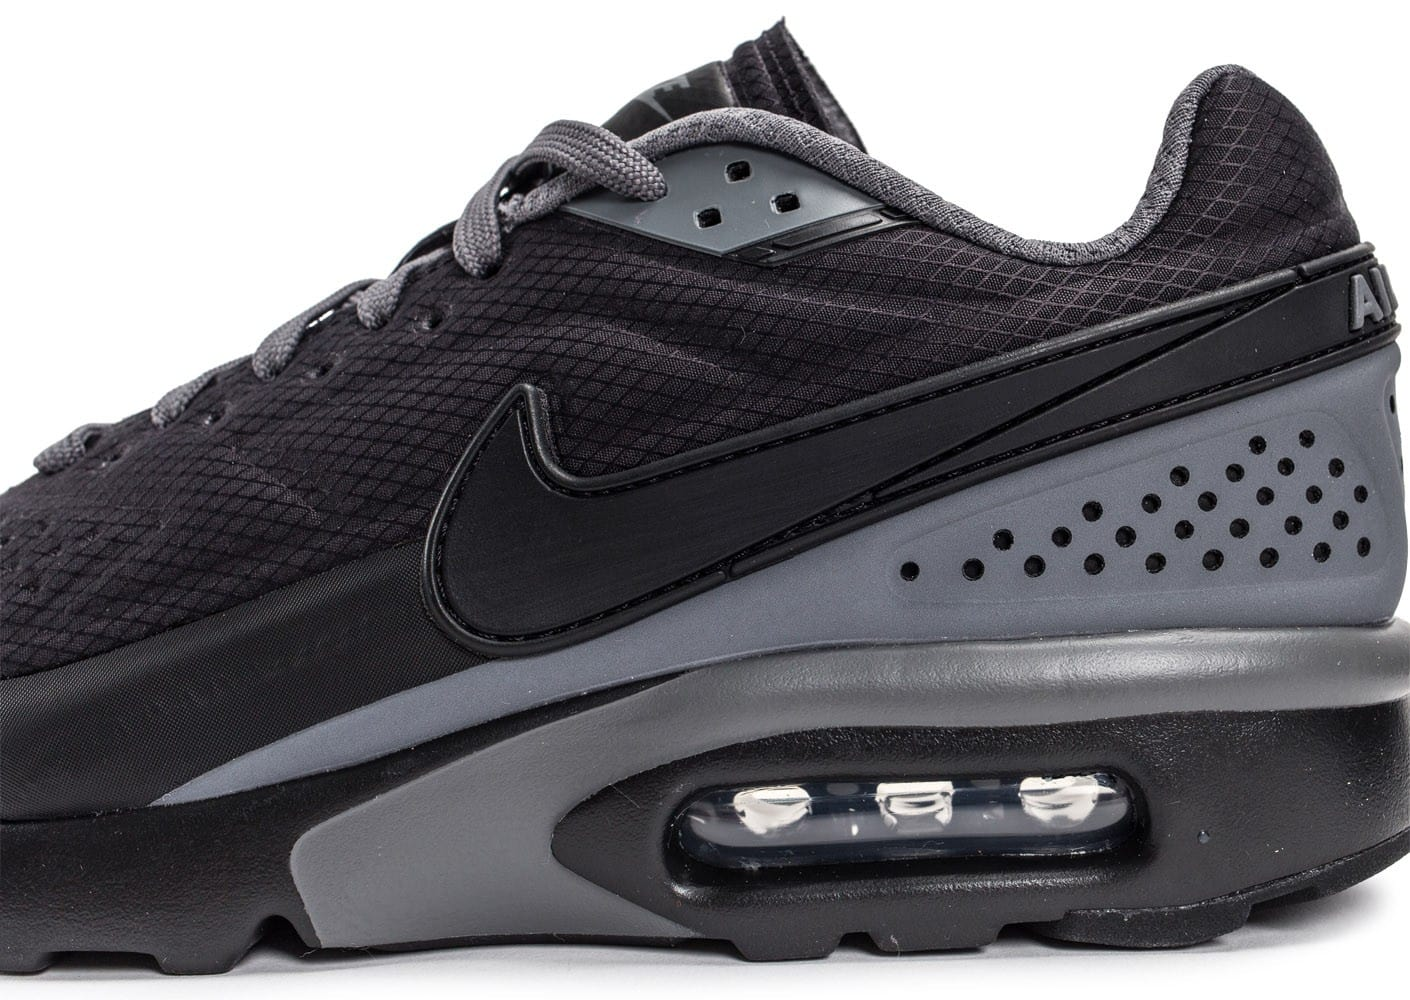 separation shoes 05972 0e8f0 ... Chaussures Nike Air Max BW Ultra SE noire vue dessus